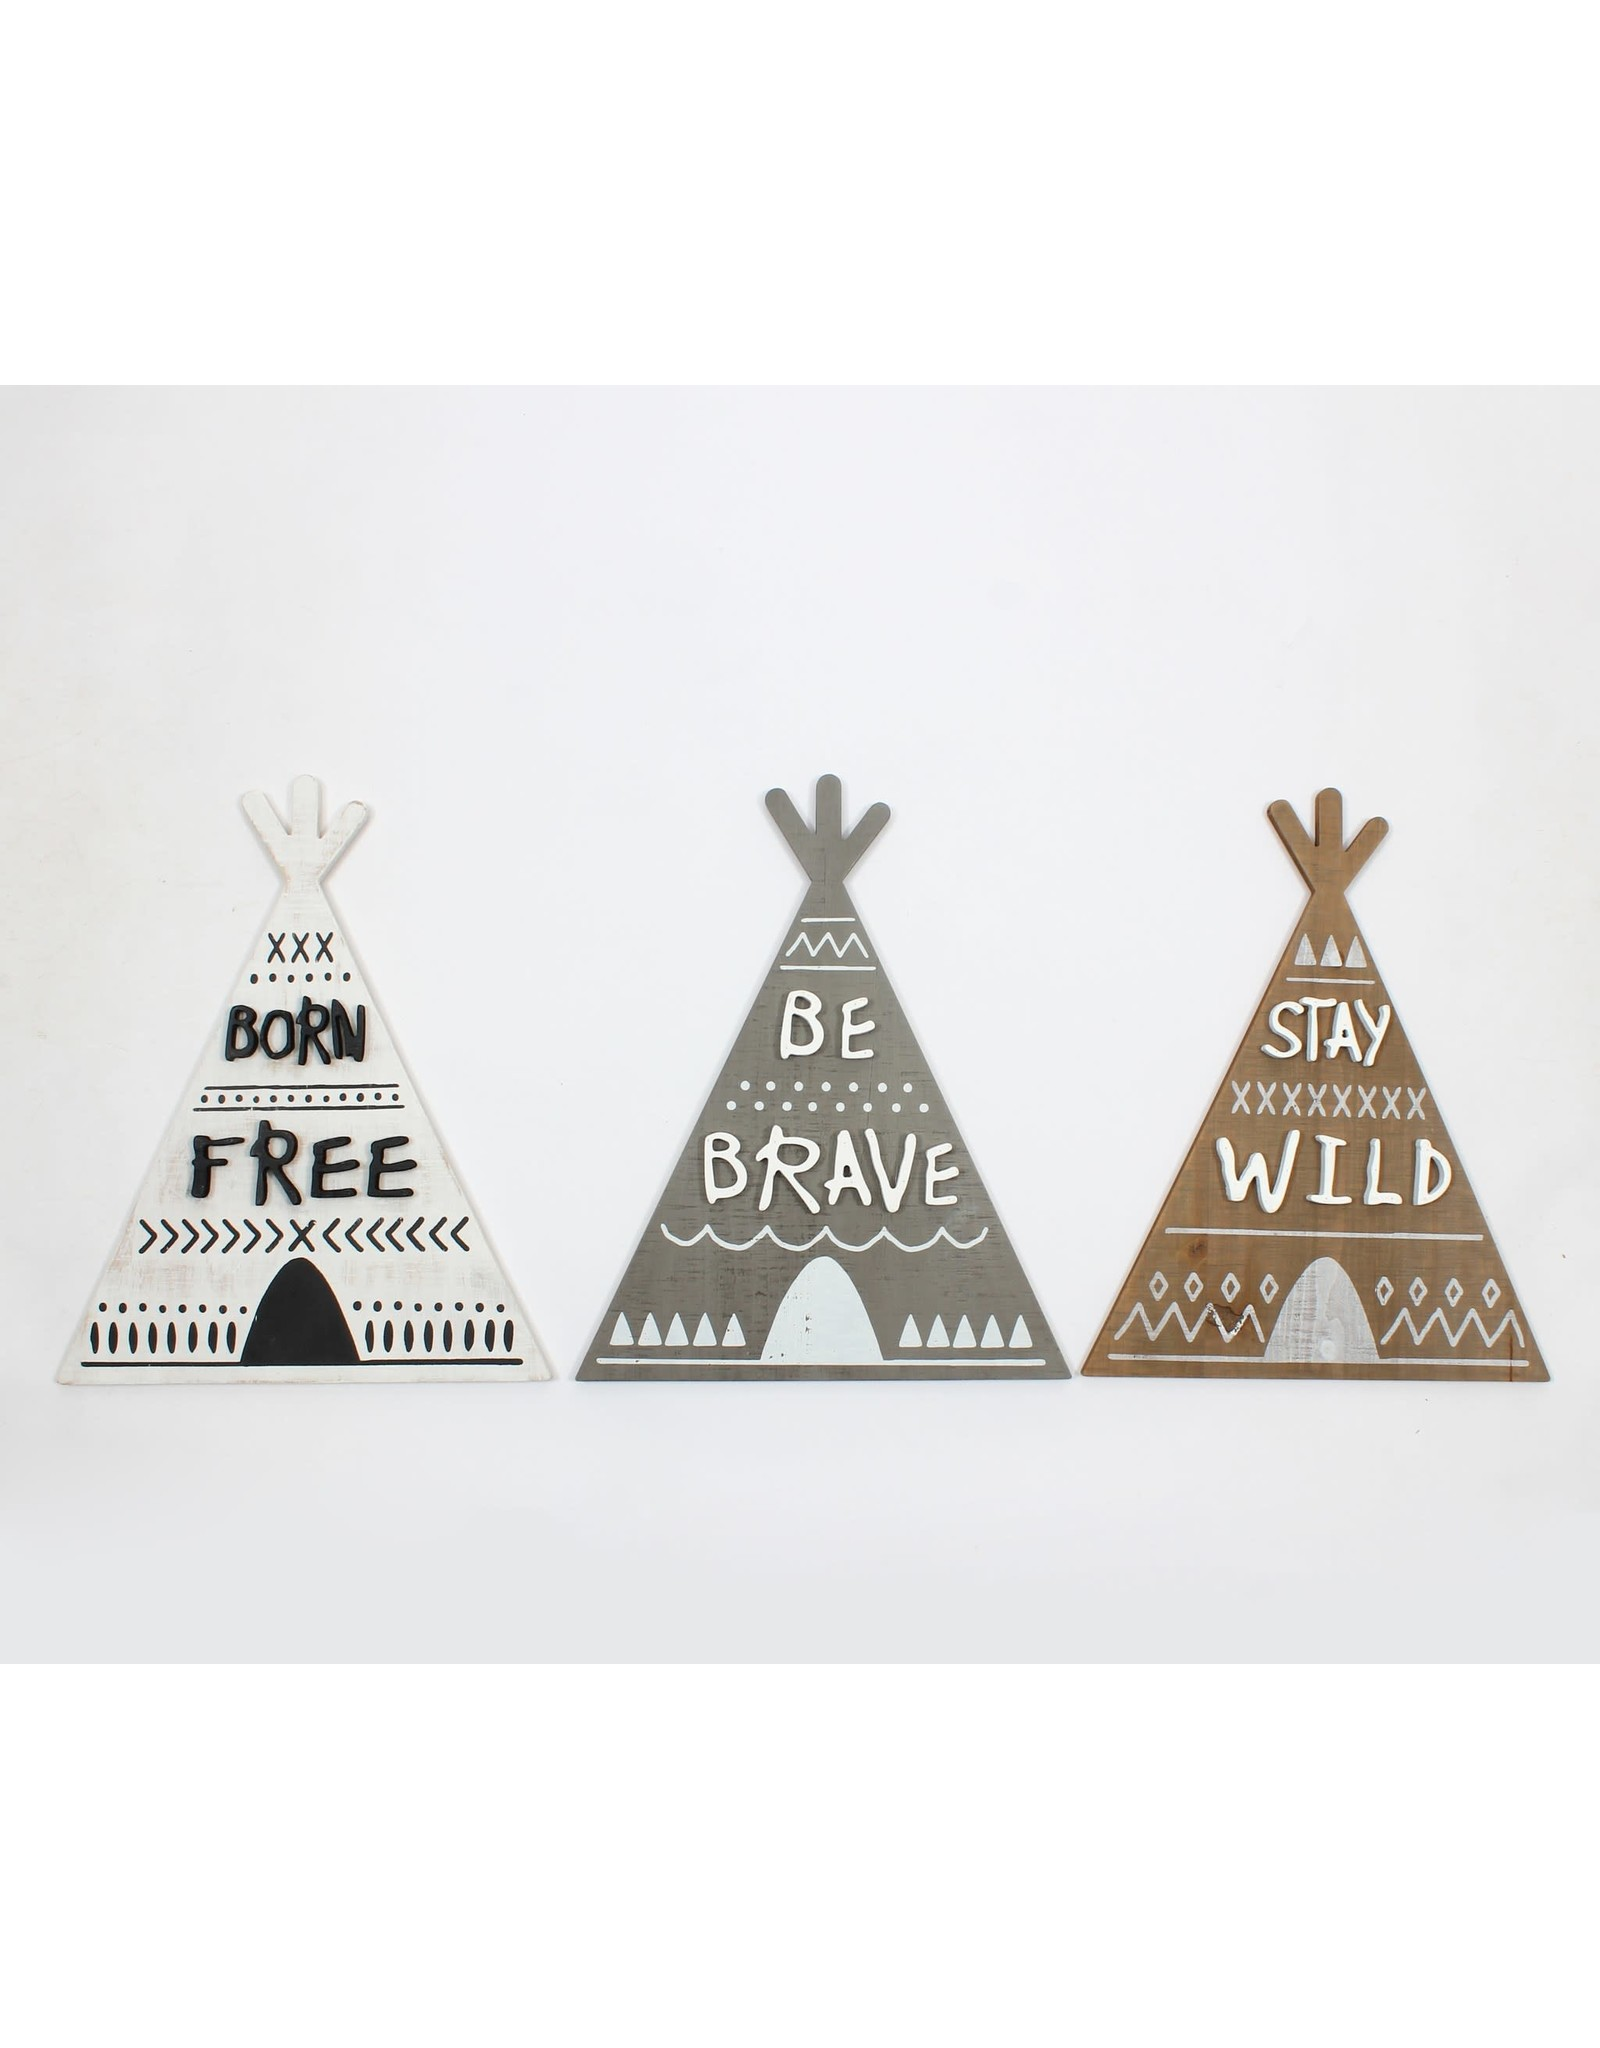 BORN FREE /BE BRAVE/STAY WILD WALL DECOR